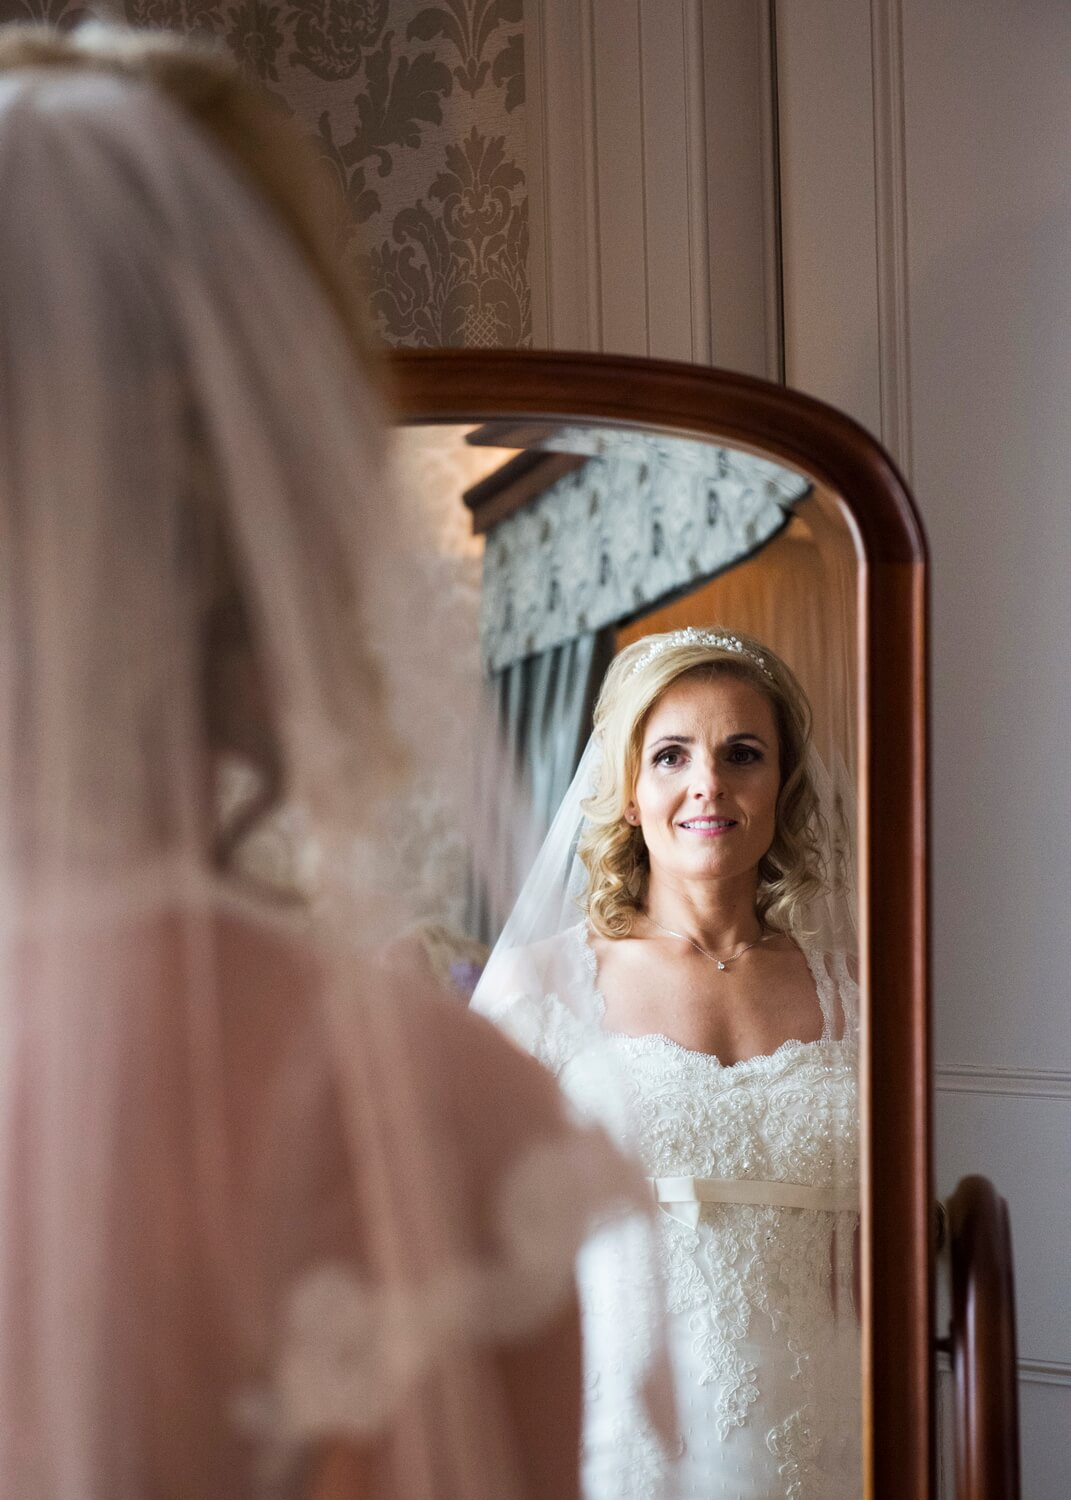 Bridal Portrait at Blairquhan Castle Ayrshire